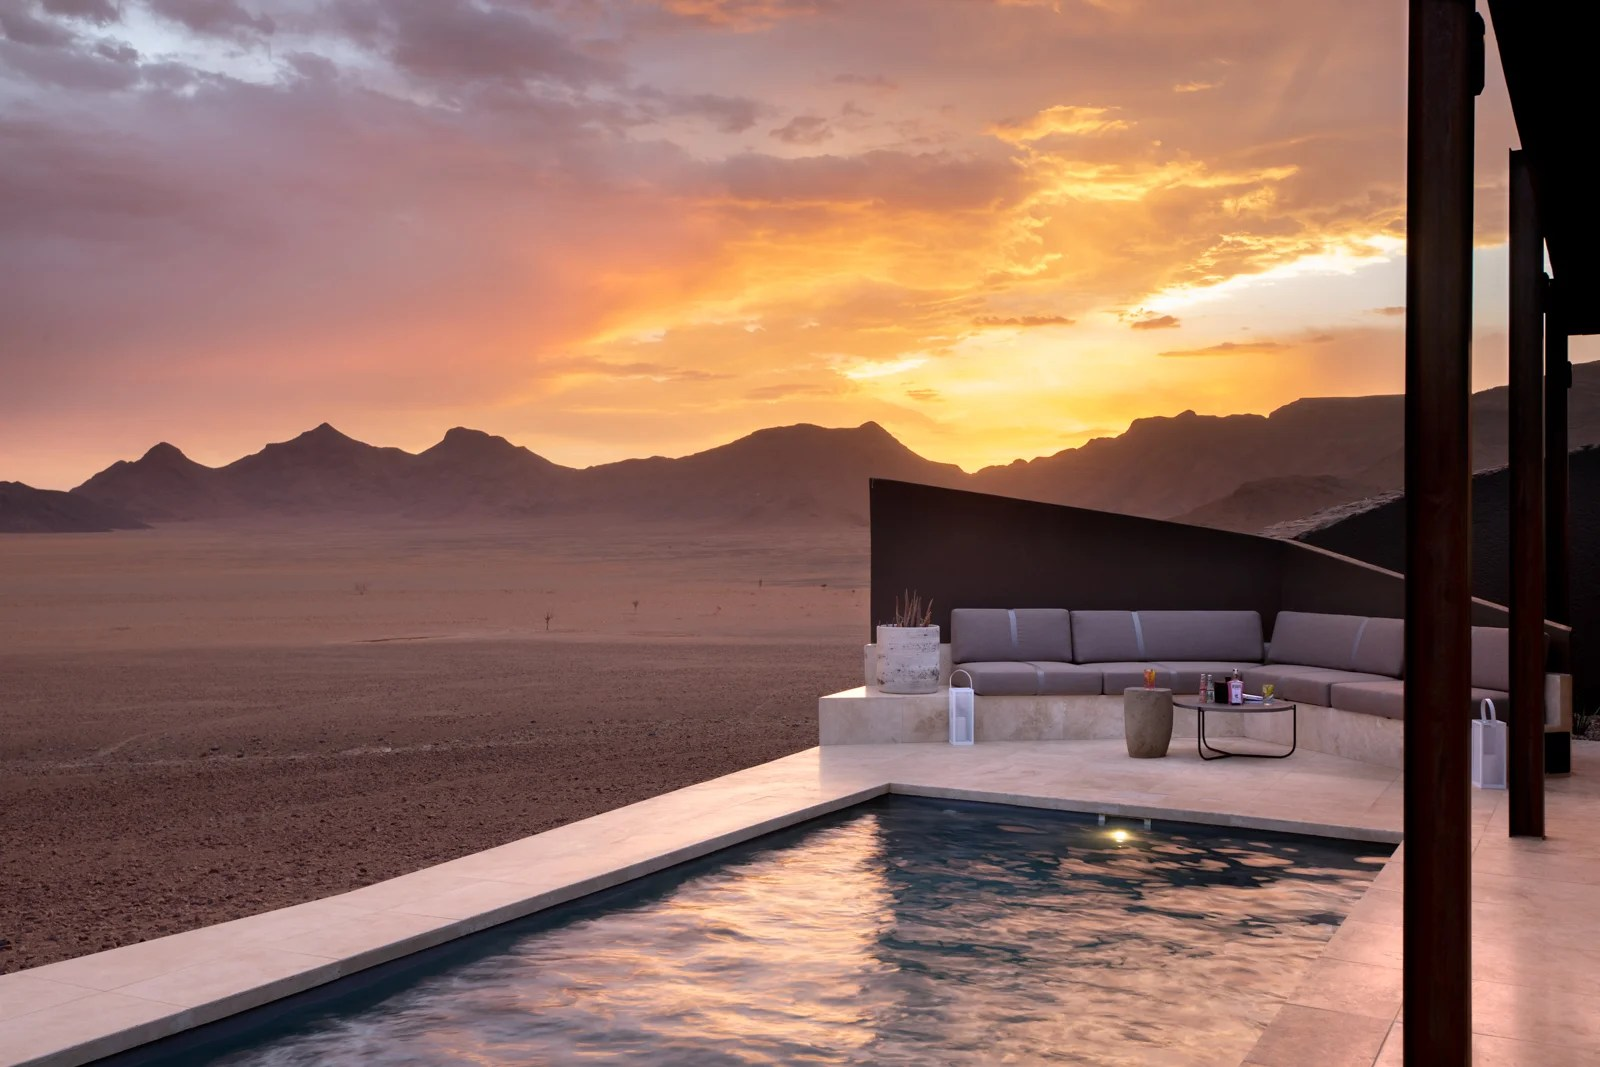 The most remote hotels and resorts on Earth